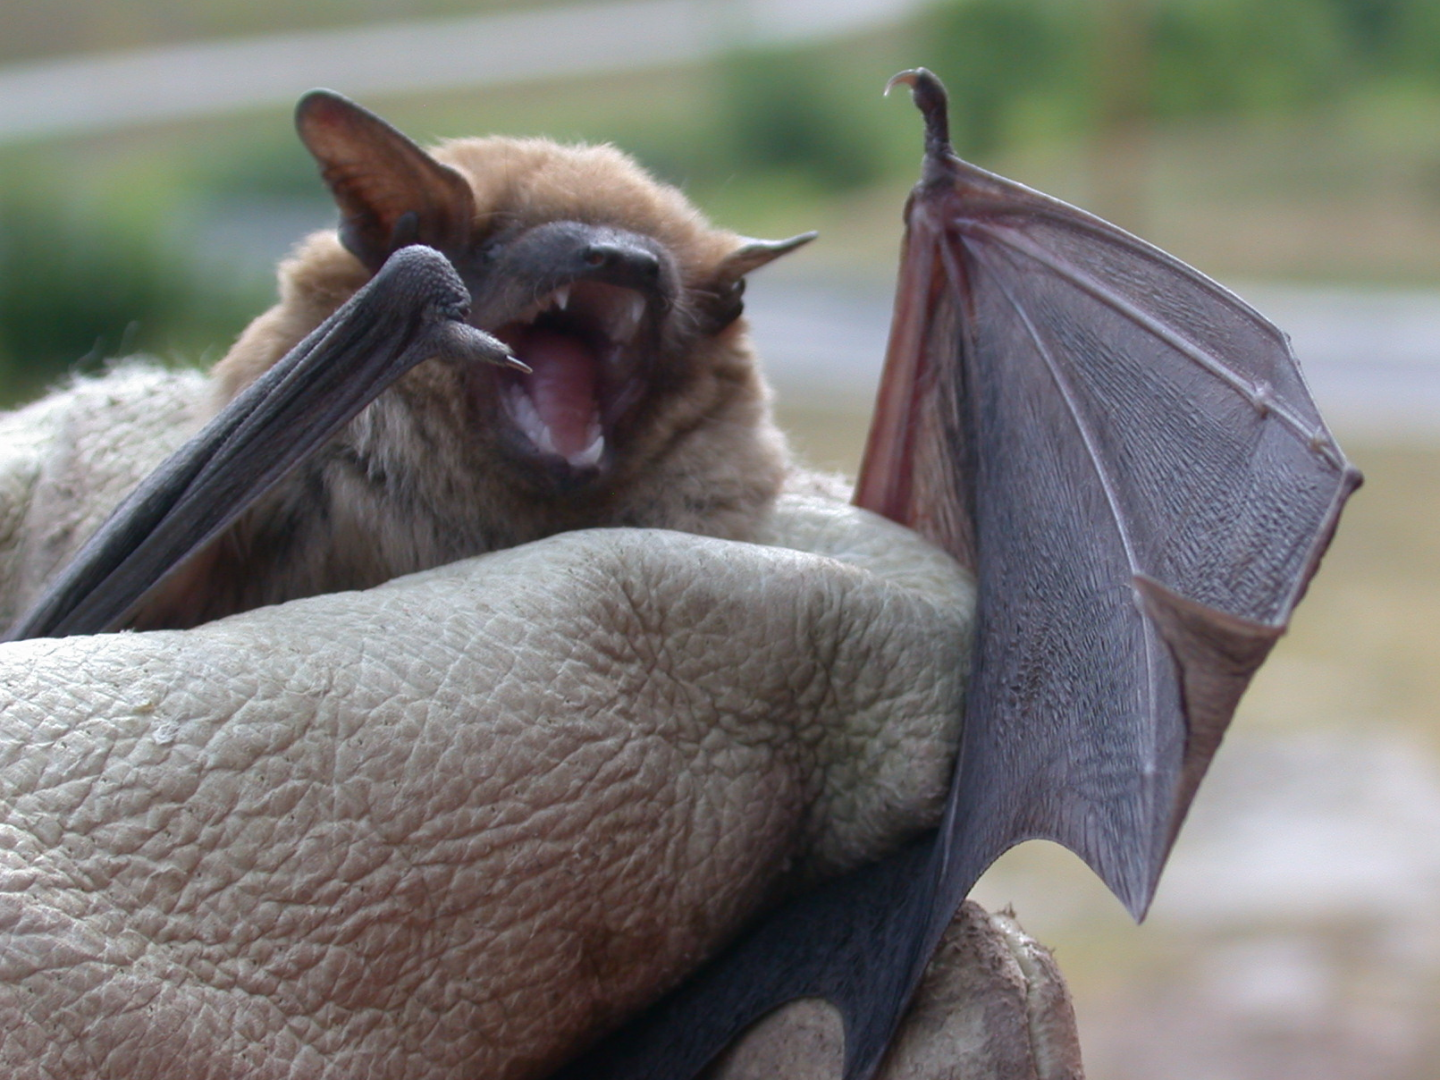 Bat Removal in the Kansas City Metro Area